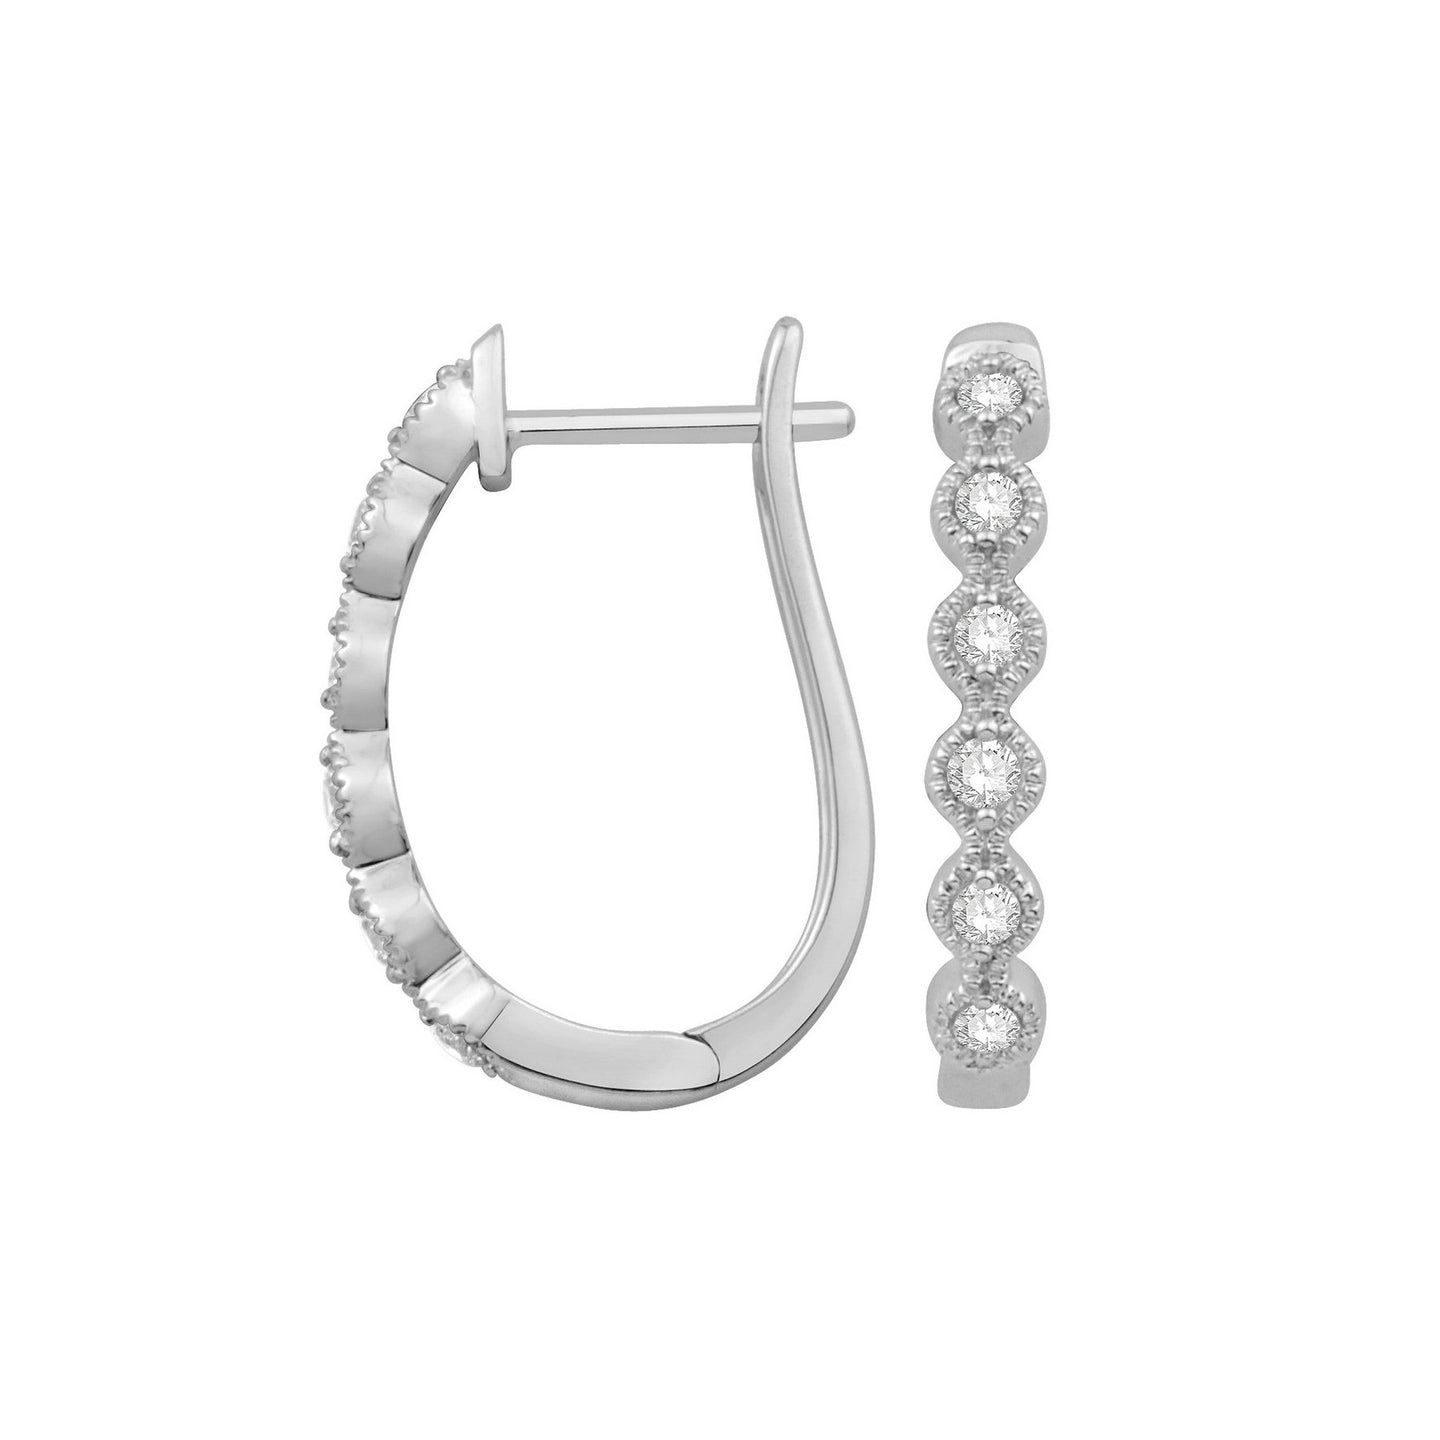 Sabel Collection 14K White Gold Diamond Hoop Earrings with Milgrain Accents